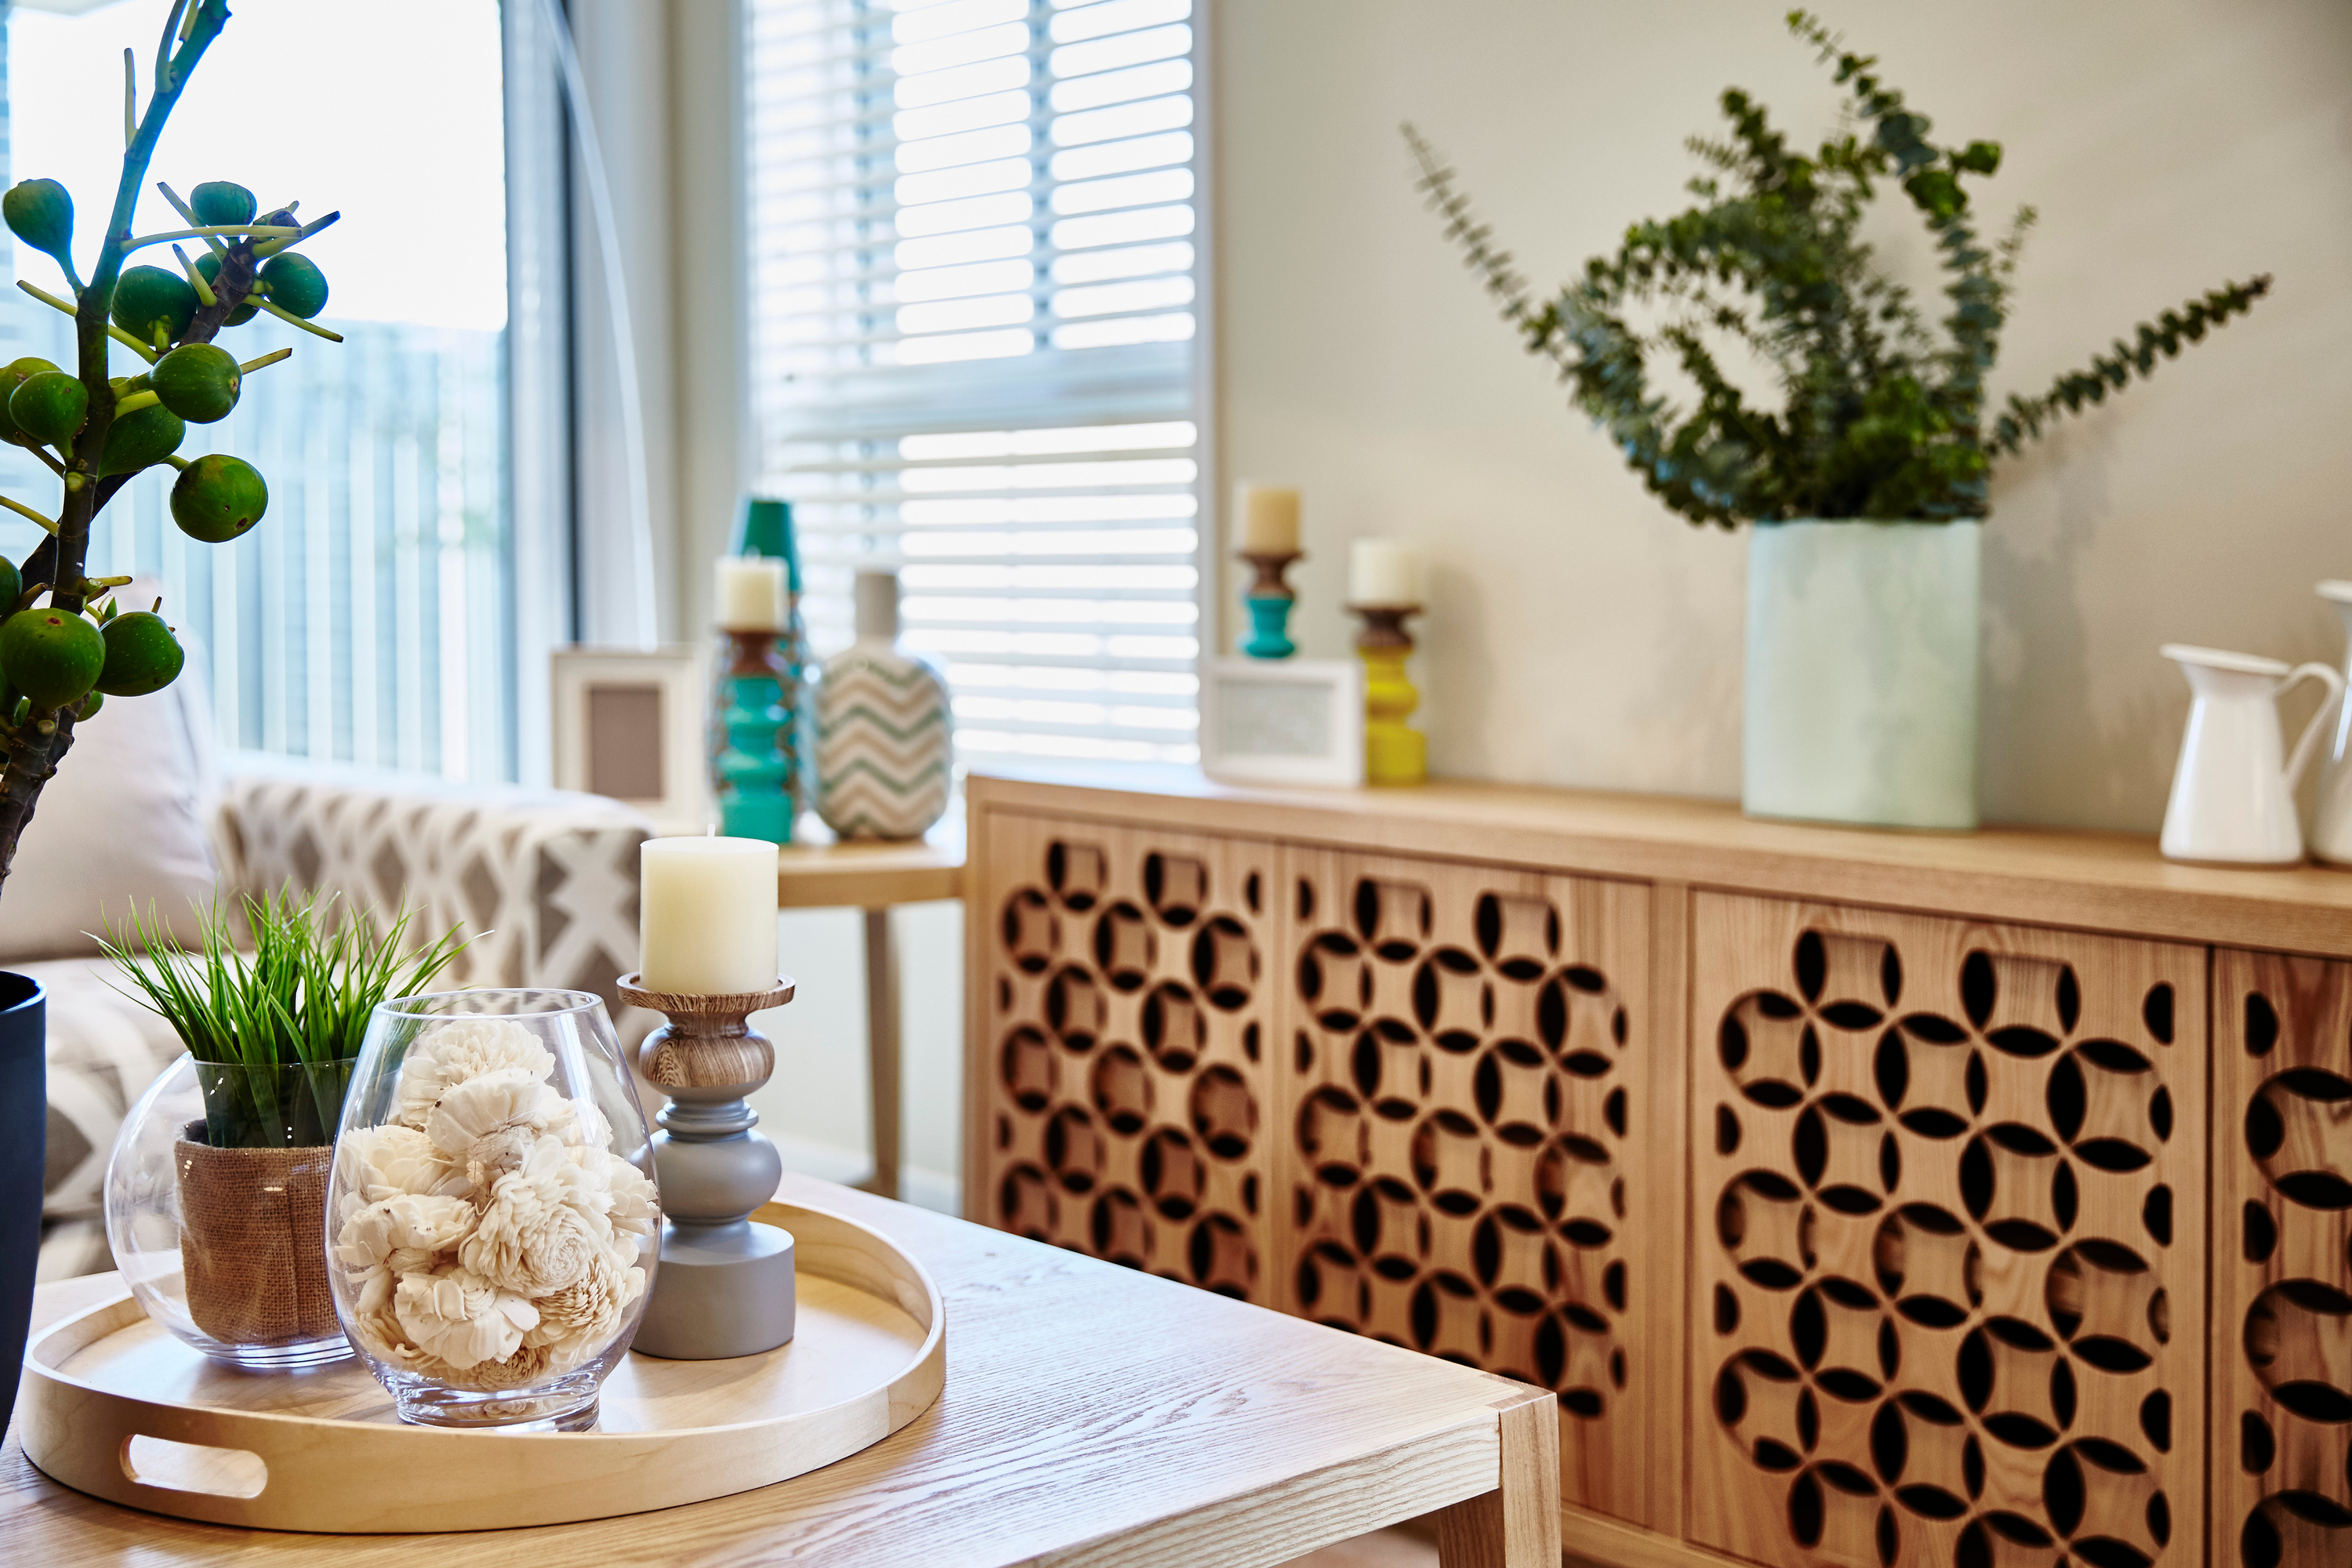 If you watch HGTV, then you've probably seen Christina on the Coast. Check out these Christina on the Coast designs to incorporate in your home. Try using a lot of natural woods in your home.